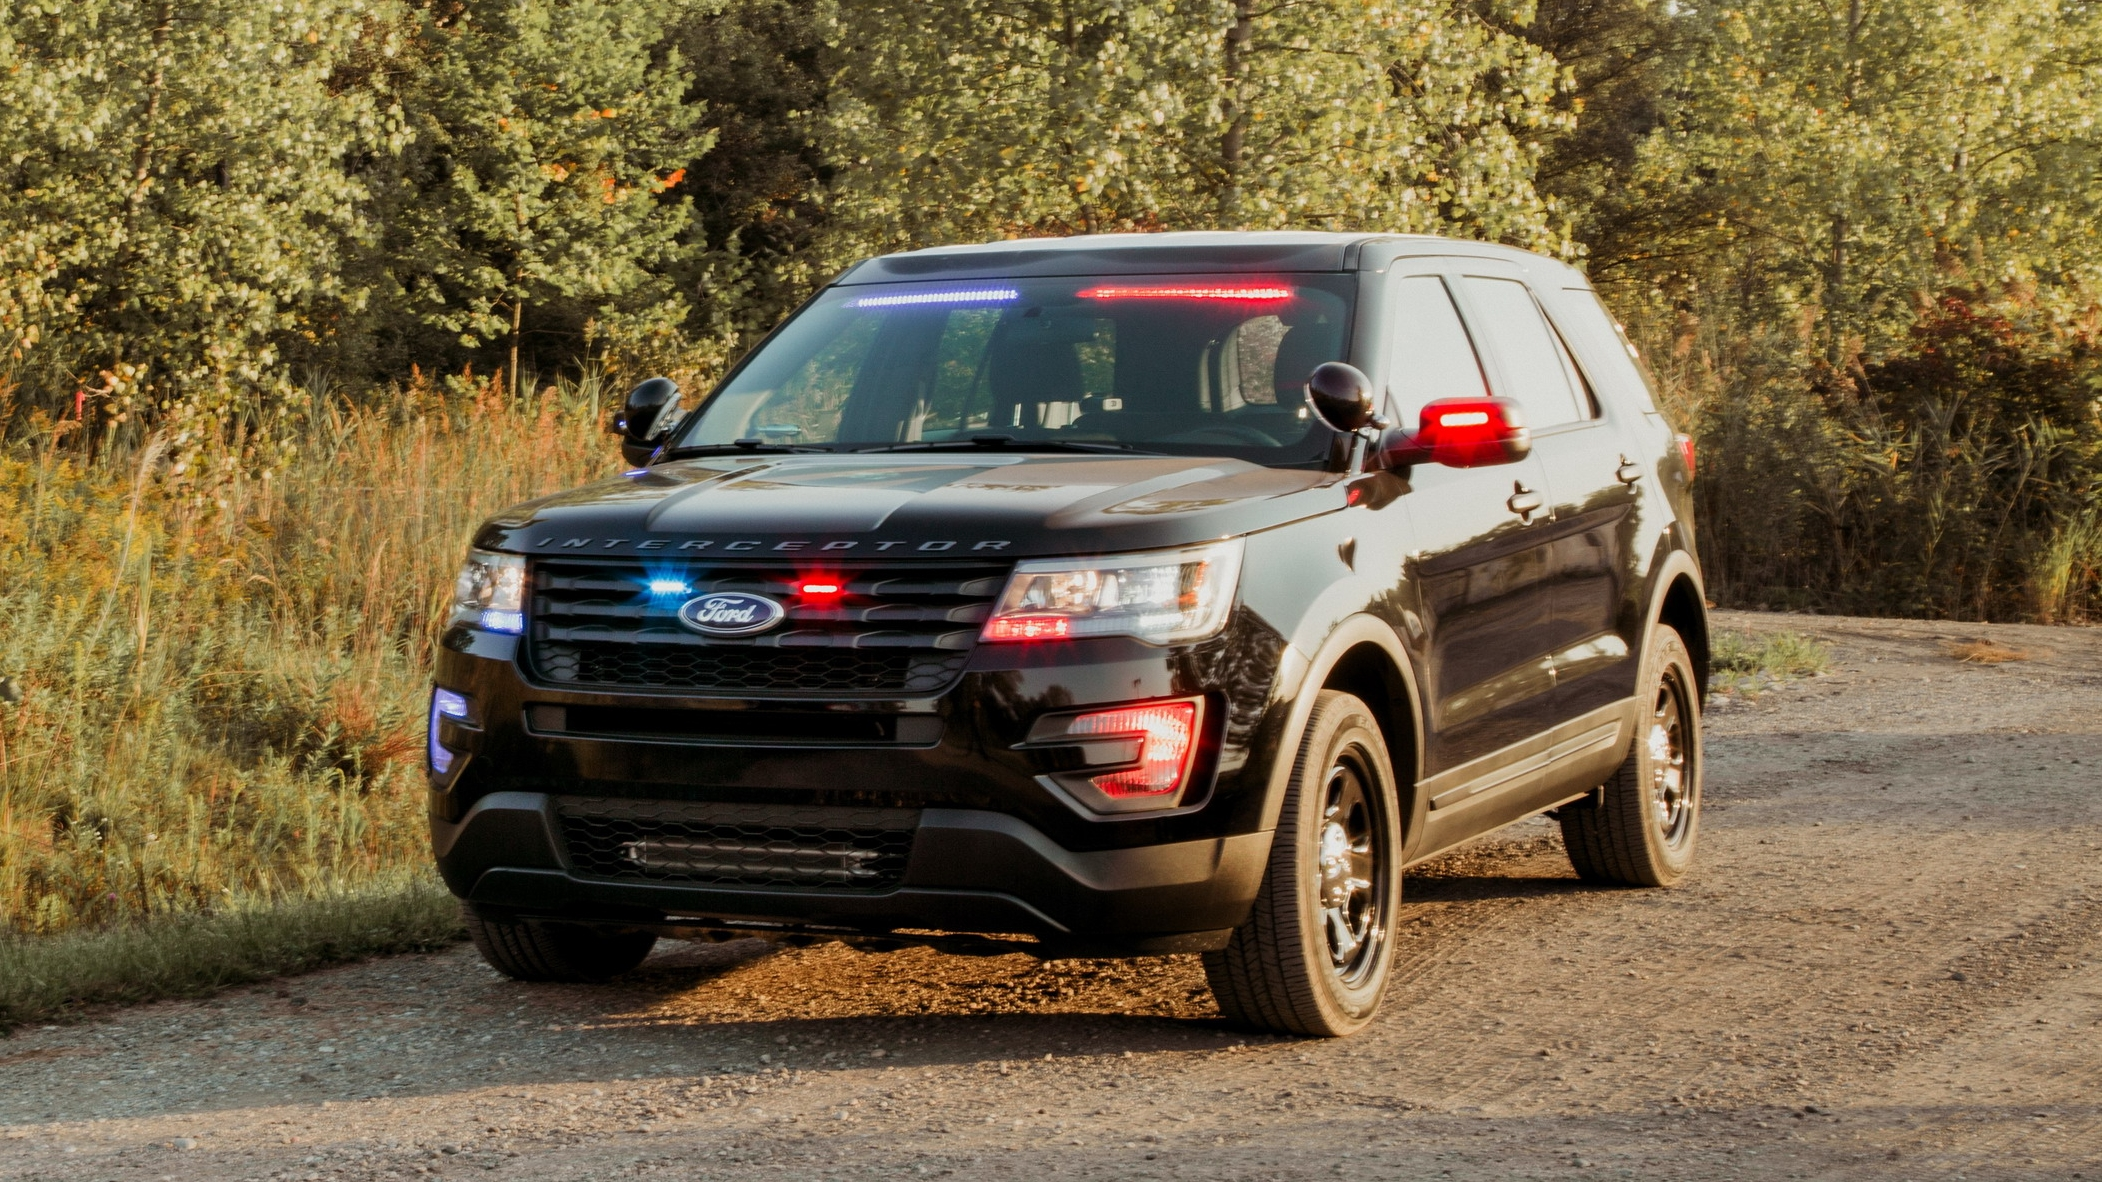 Ford Police Interceptor Utility Gets New Rear Spoiler ...